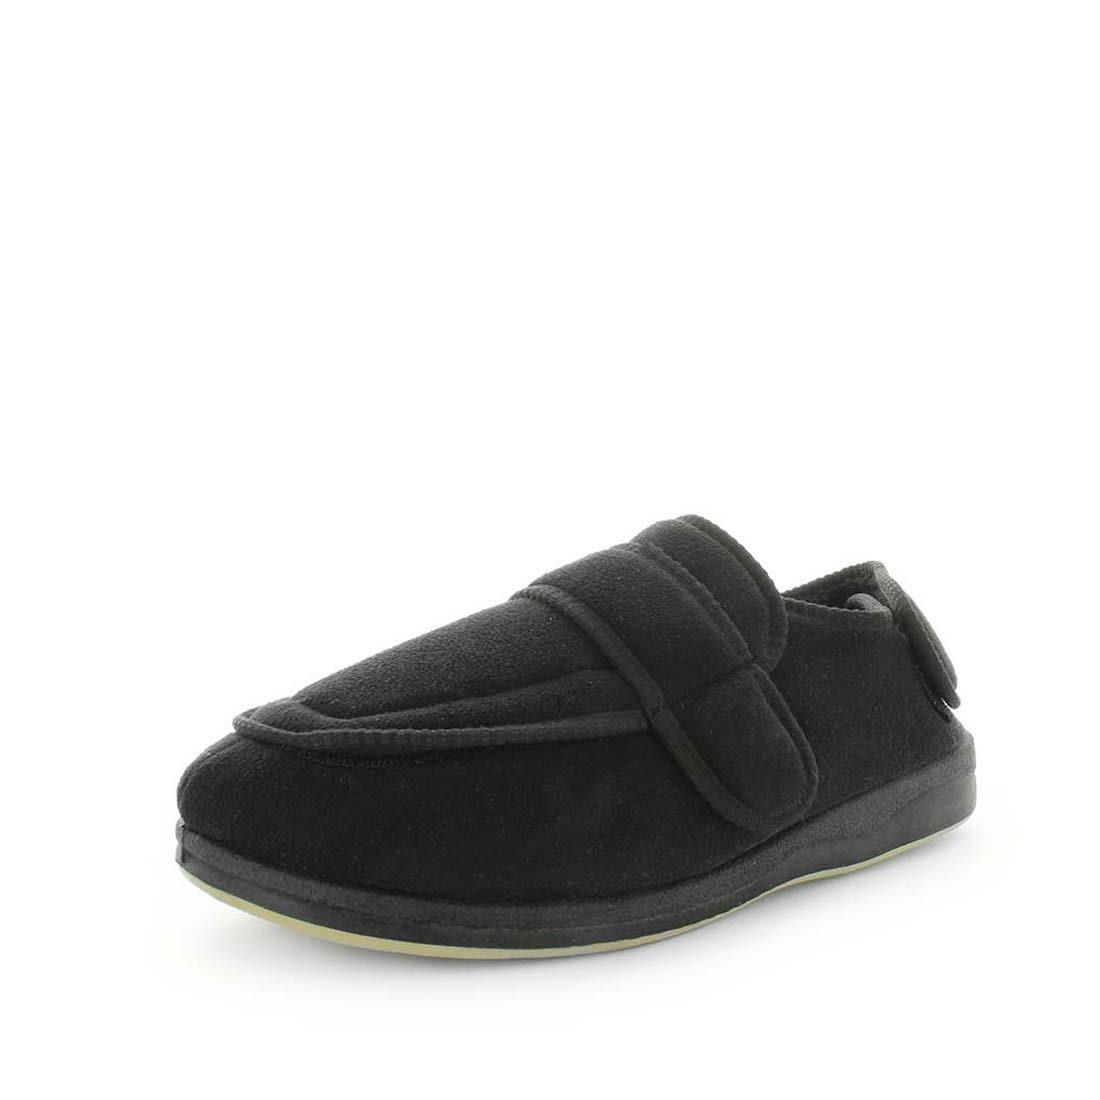 EDISON by PANDA - iShoes - Men's Shoes, Men's Shoes: Slippers - FOOTWEAR-FOOTWEAR